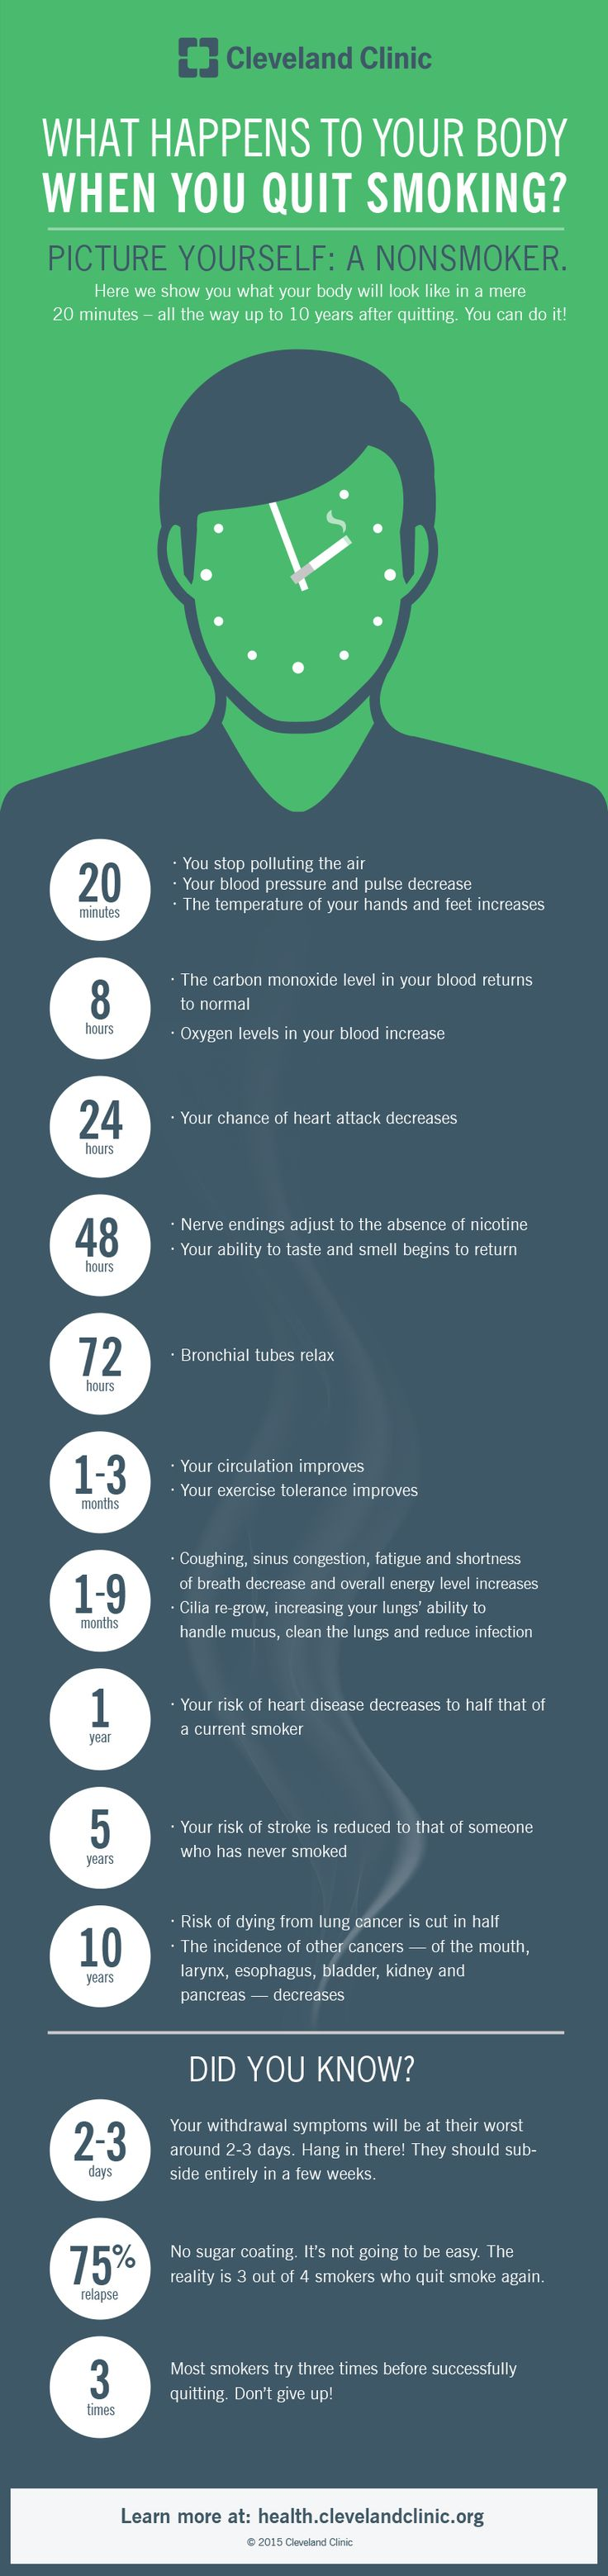 best smoking cessation ideas tips for quitting what happens to your body when you quit smoking infographic